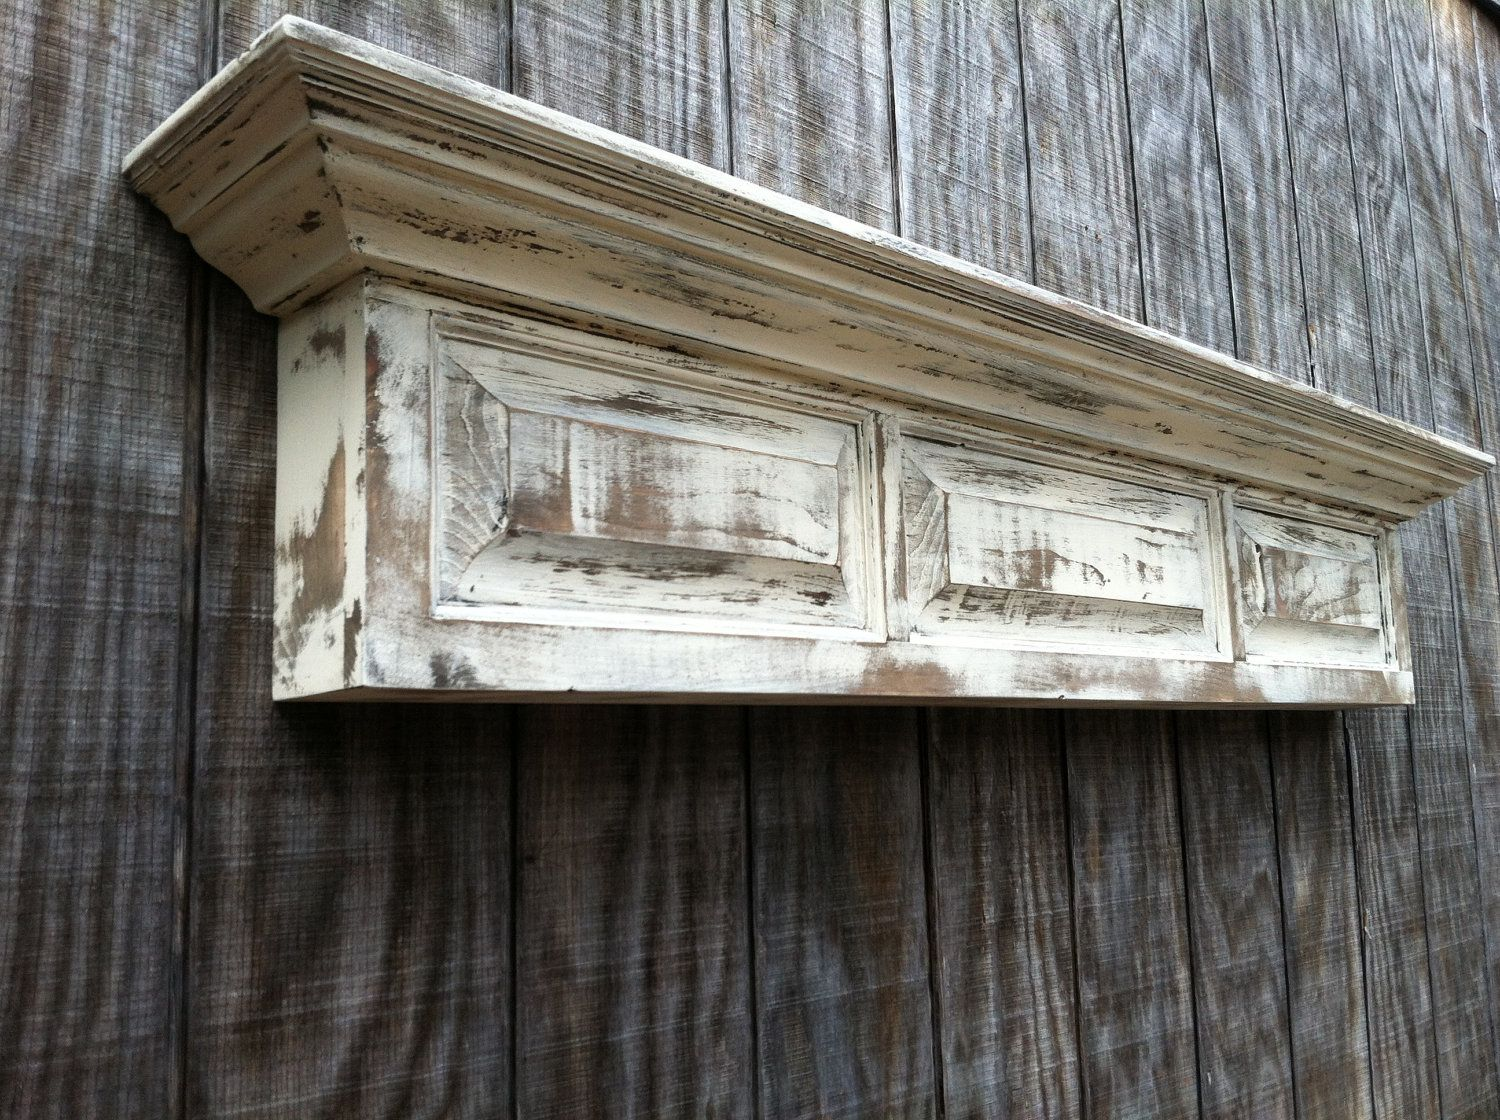 Distressed Wall Shelf Raised Panel Fireplace Mantel Shelf Via Etsy Wood